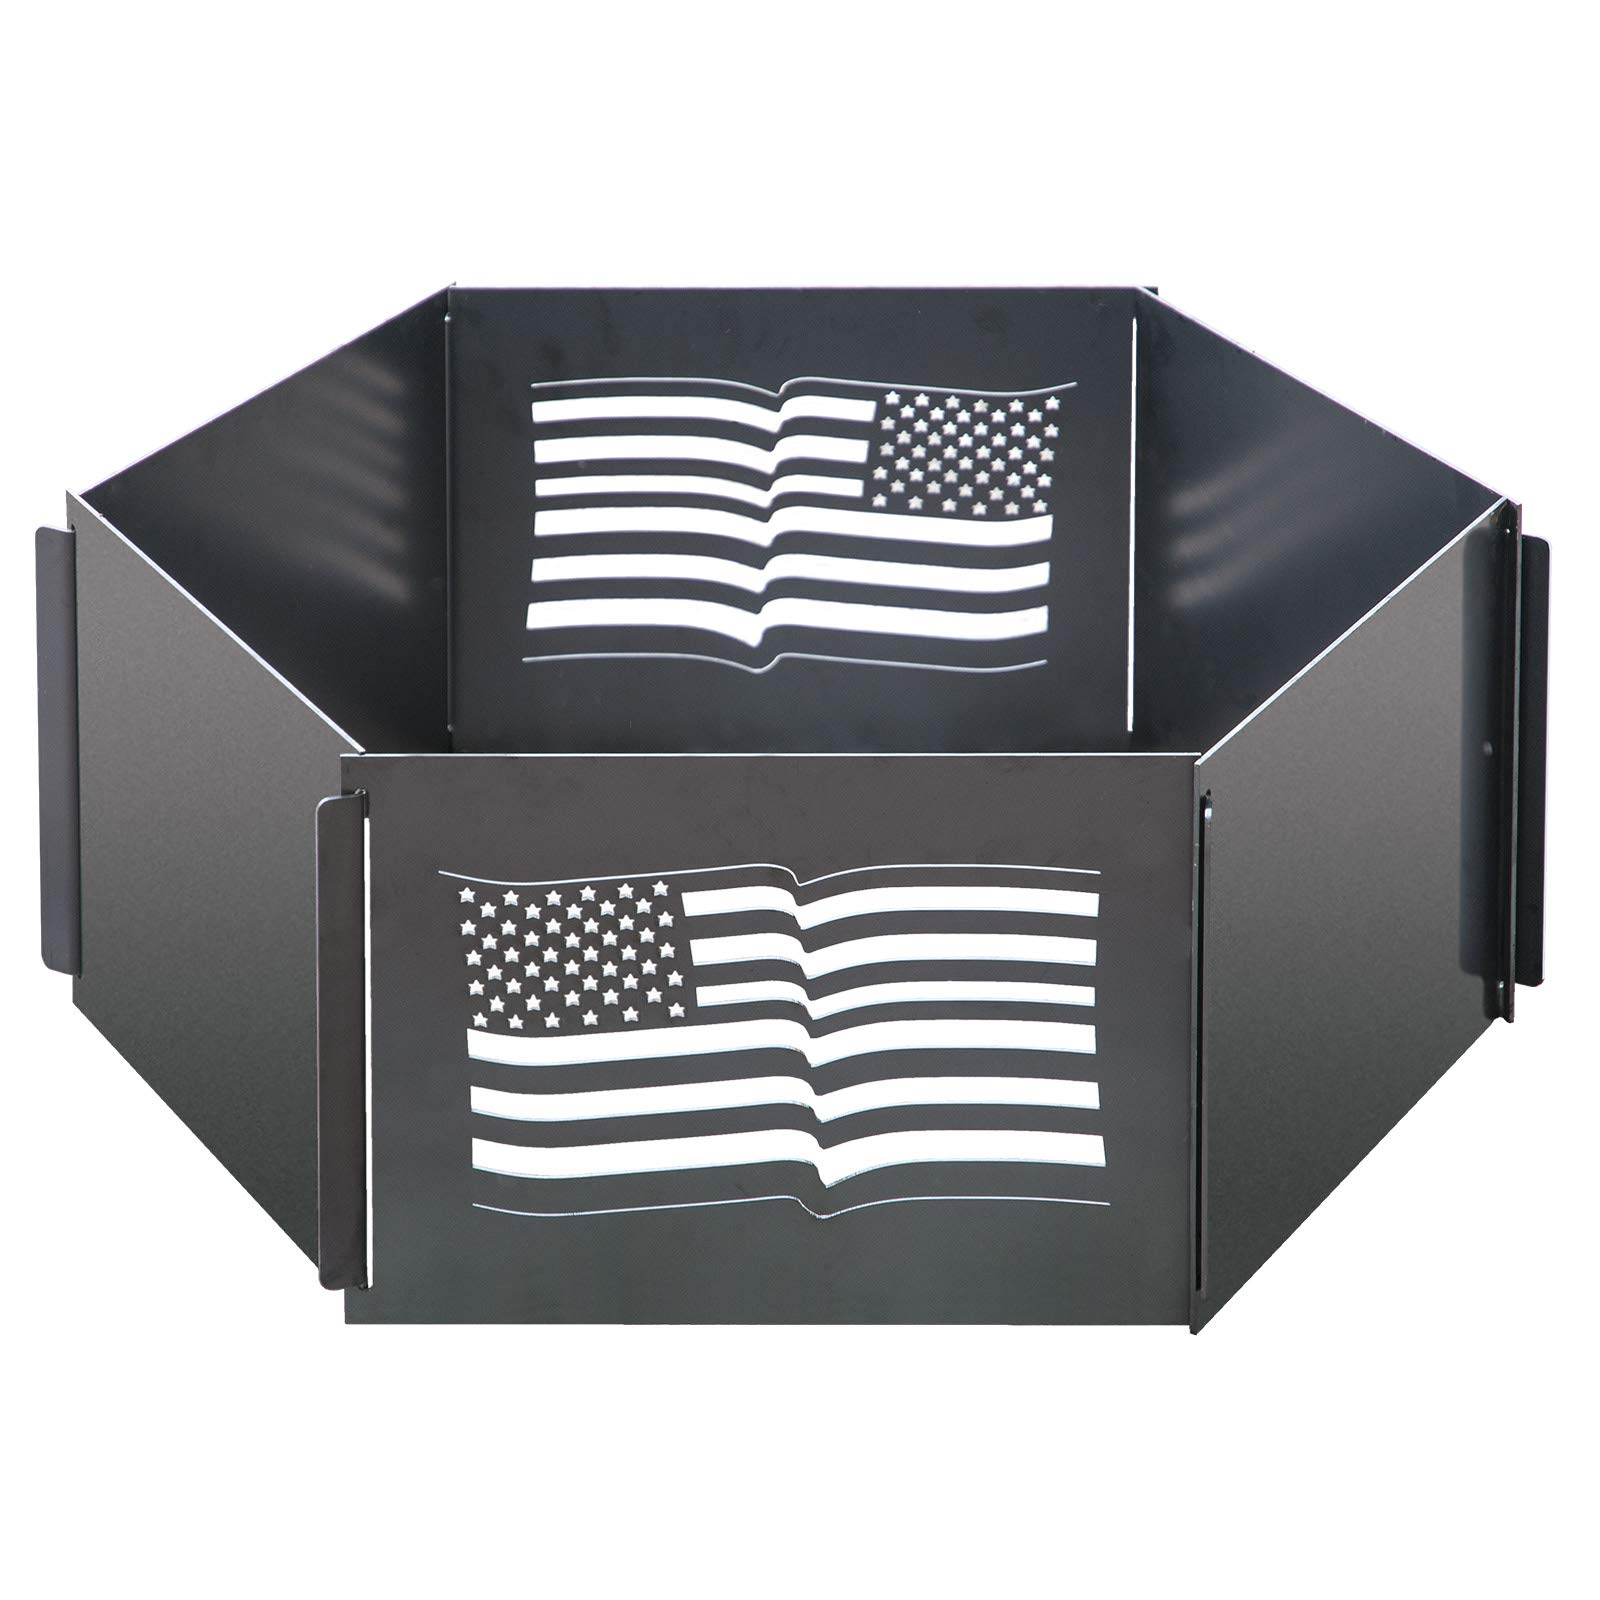 Behlen Country 90110100 American Flag Collapsible Fire Ring with Carry Bag, 30'' Diameter x 11'' H, Black by Behlen Country